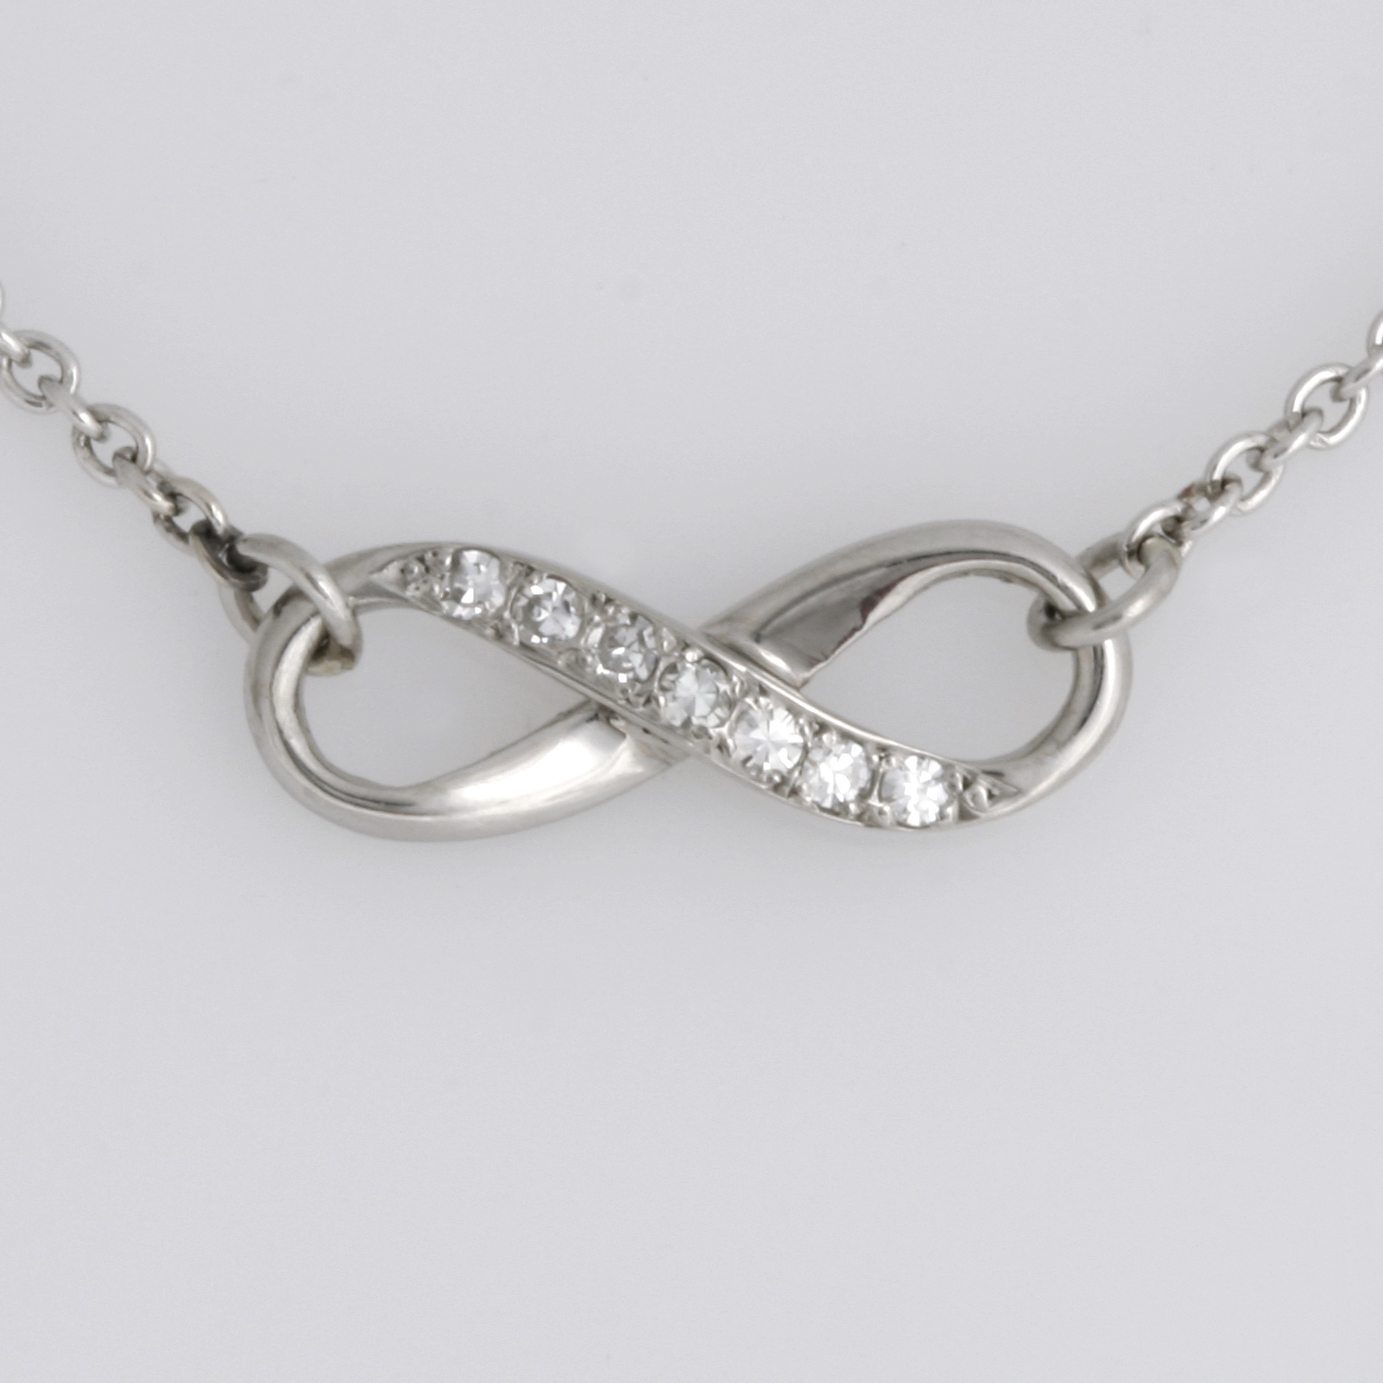 Handmade ladies palladium diamond Infinity pendant